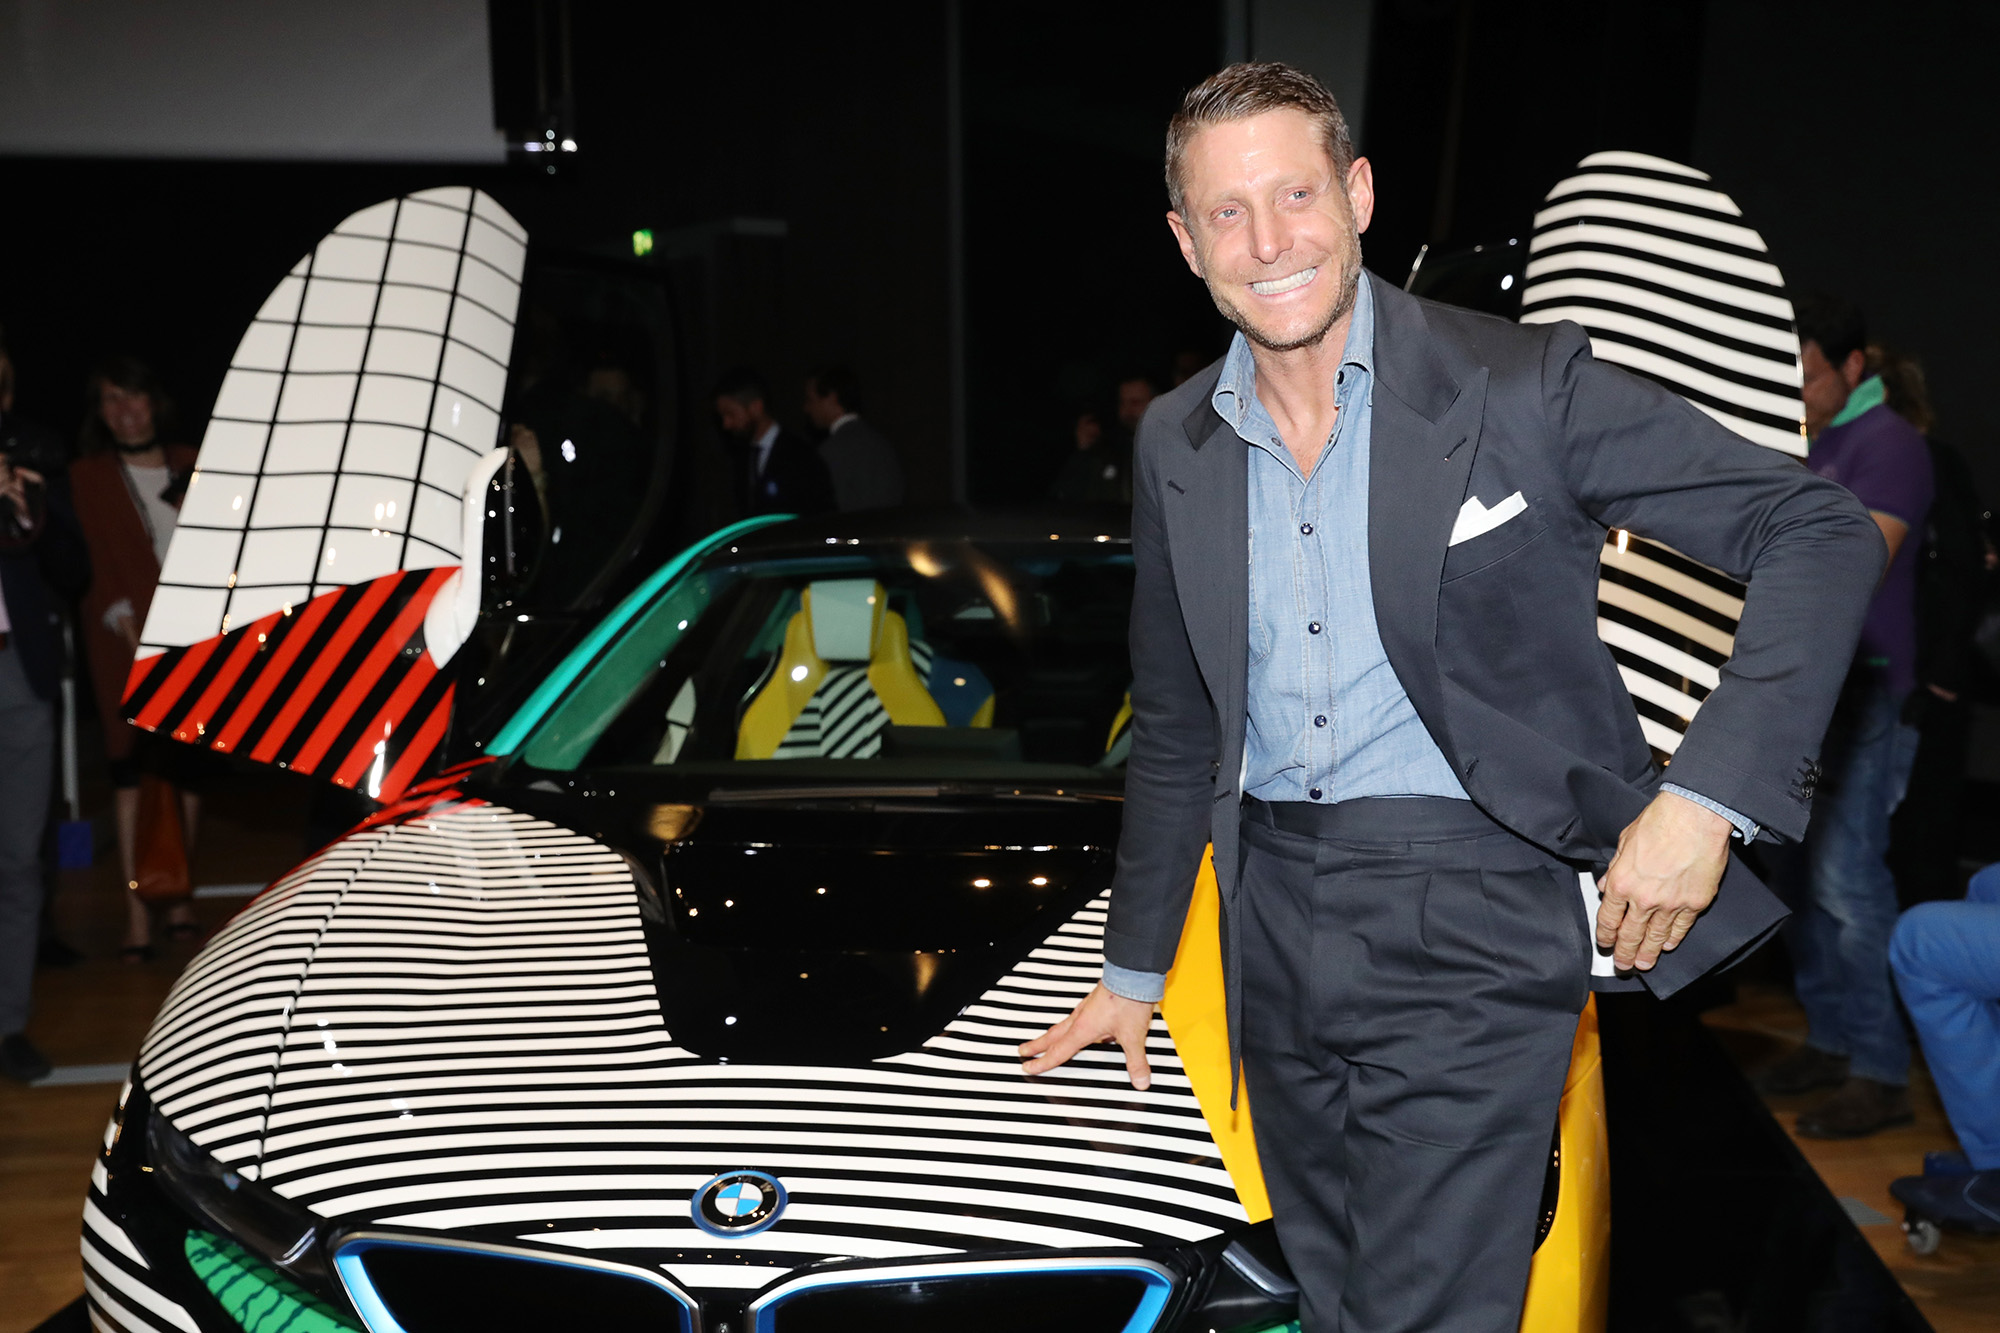 Lapo elkann e garage italia customs ecco le due ultime for Costo del garage di due auto